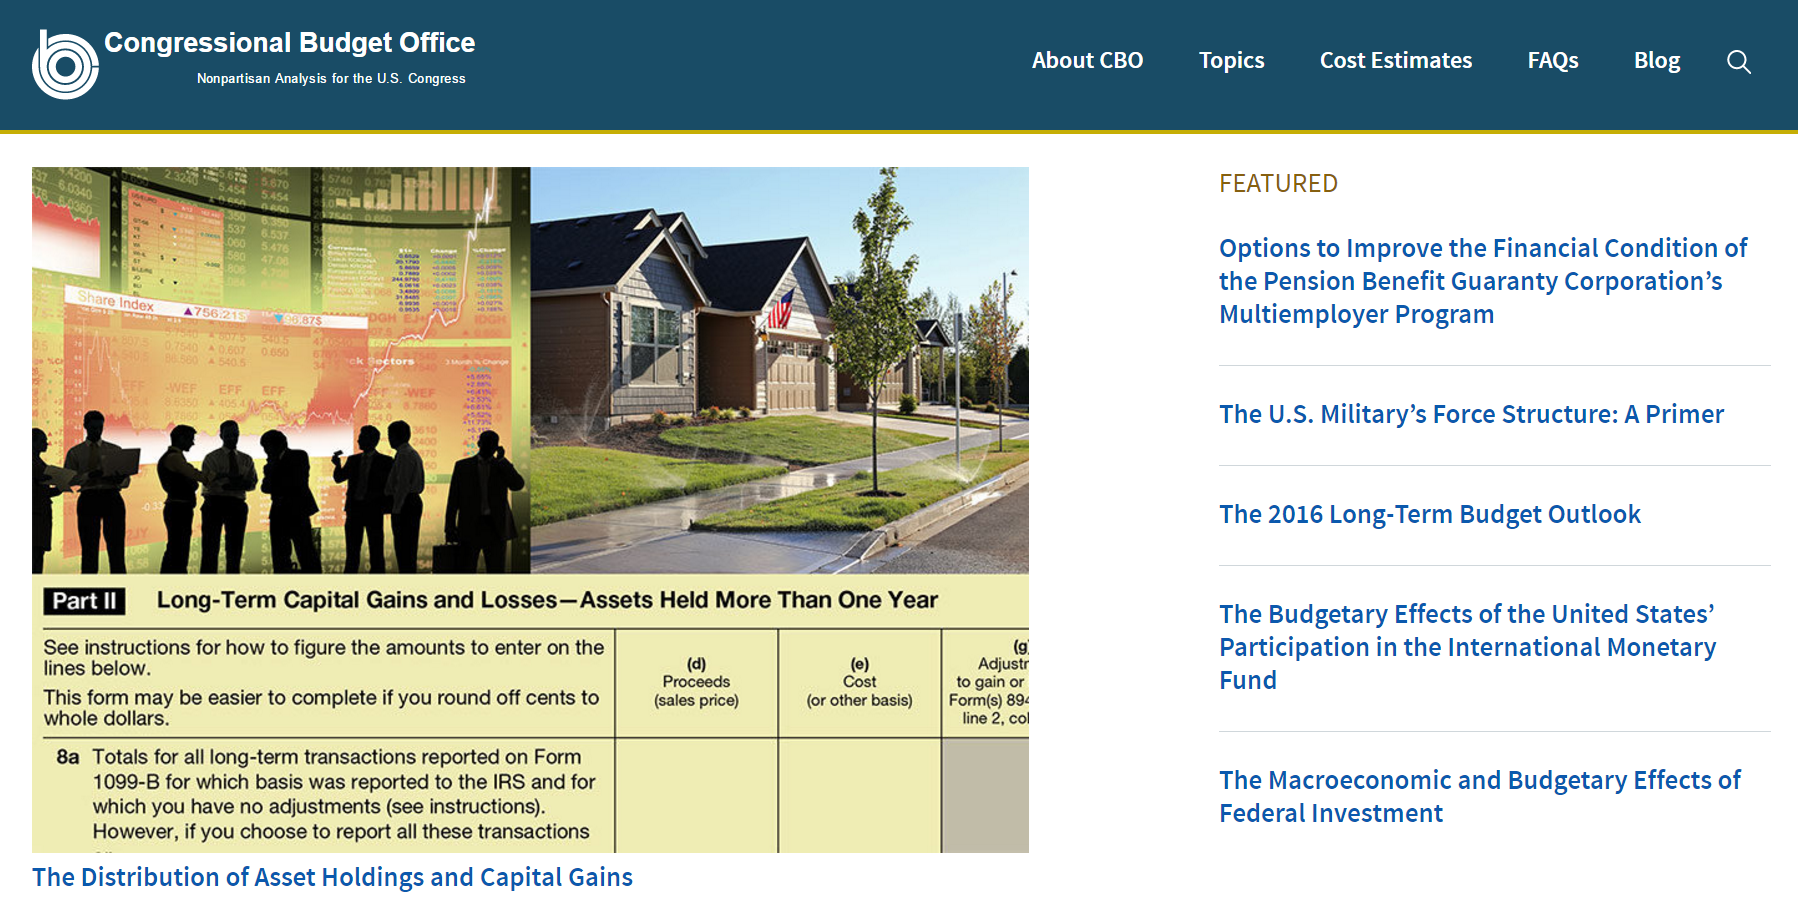 cbo-congressional-budget-office-website-screenshot-1--1